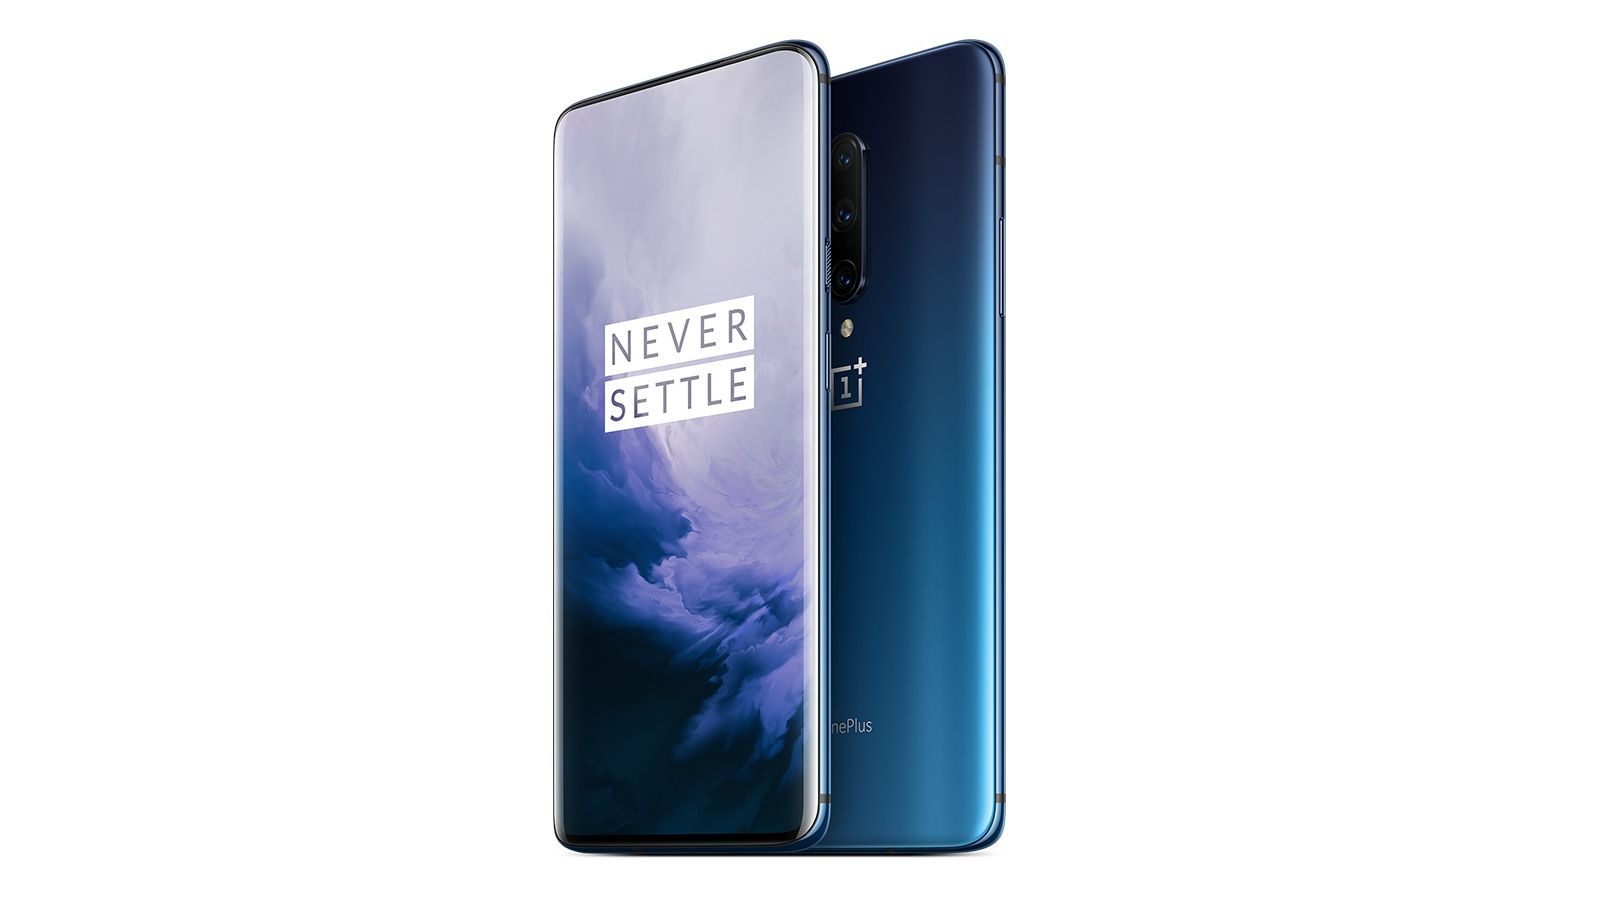 The OnePlus 7 Pro's camera shown off lifting 49lb (22kg